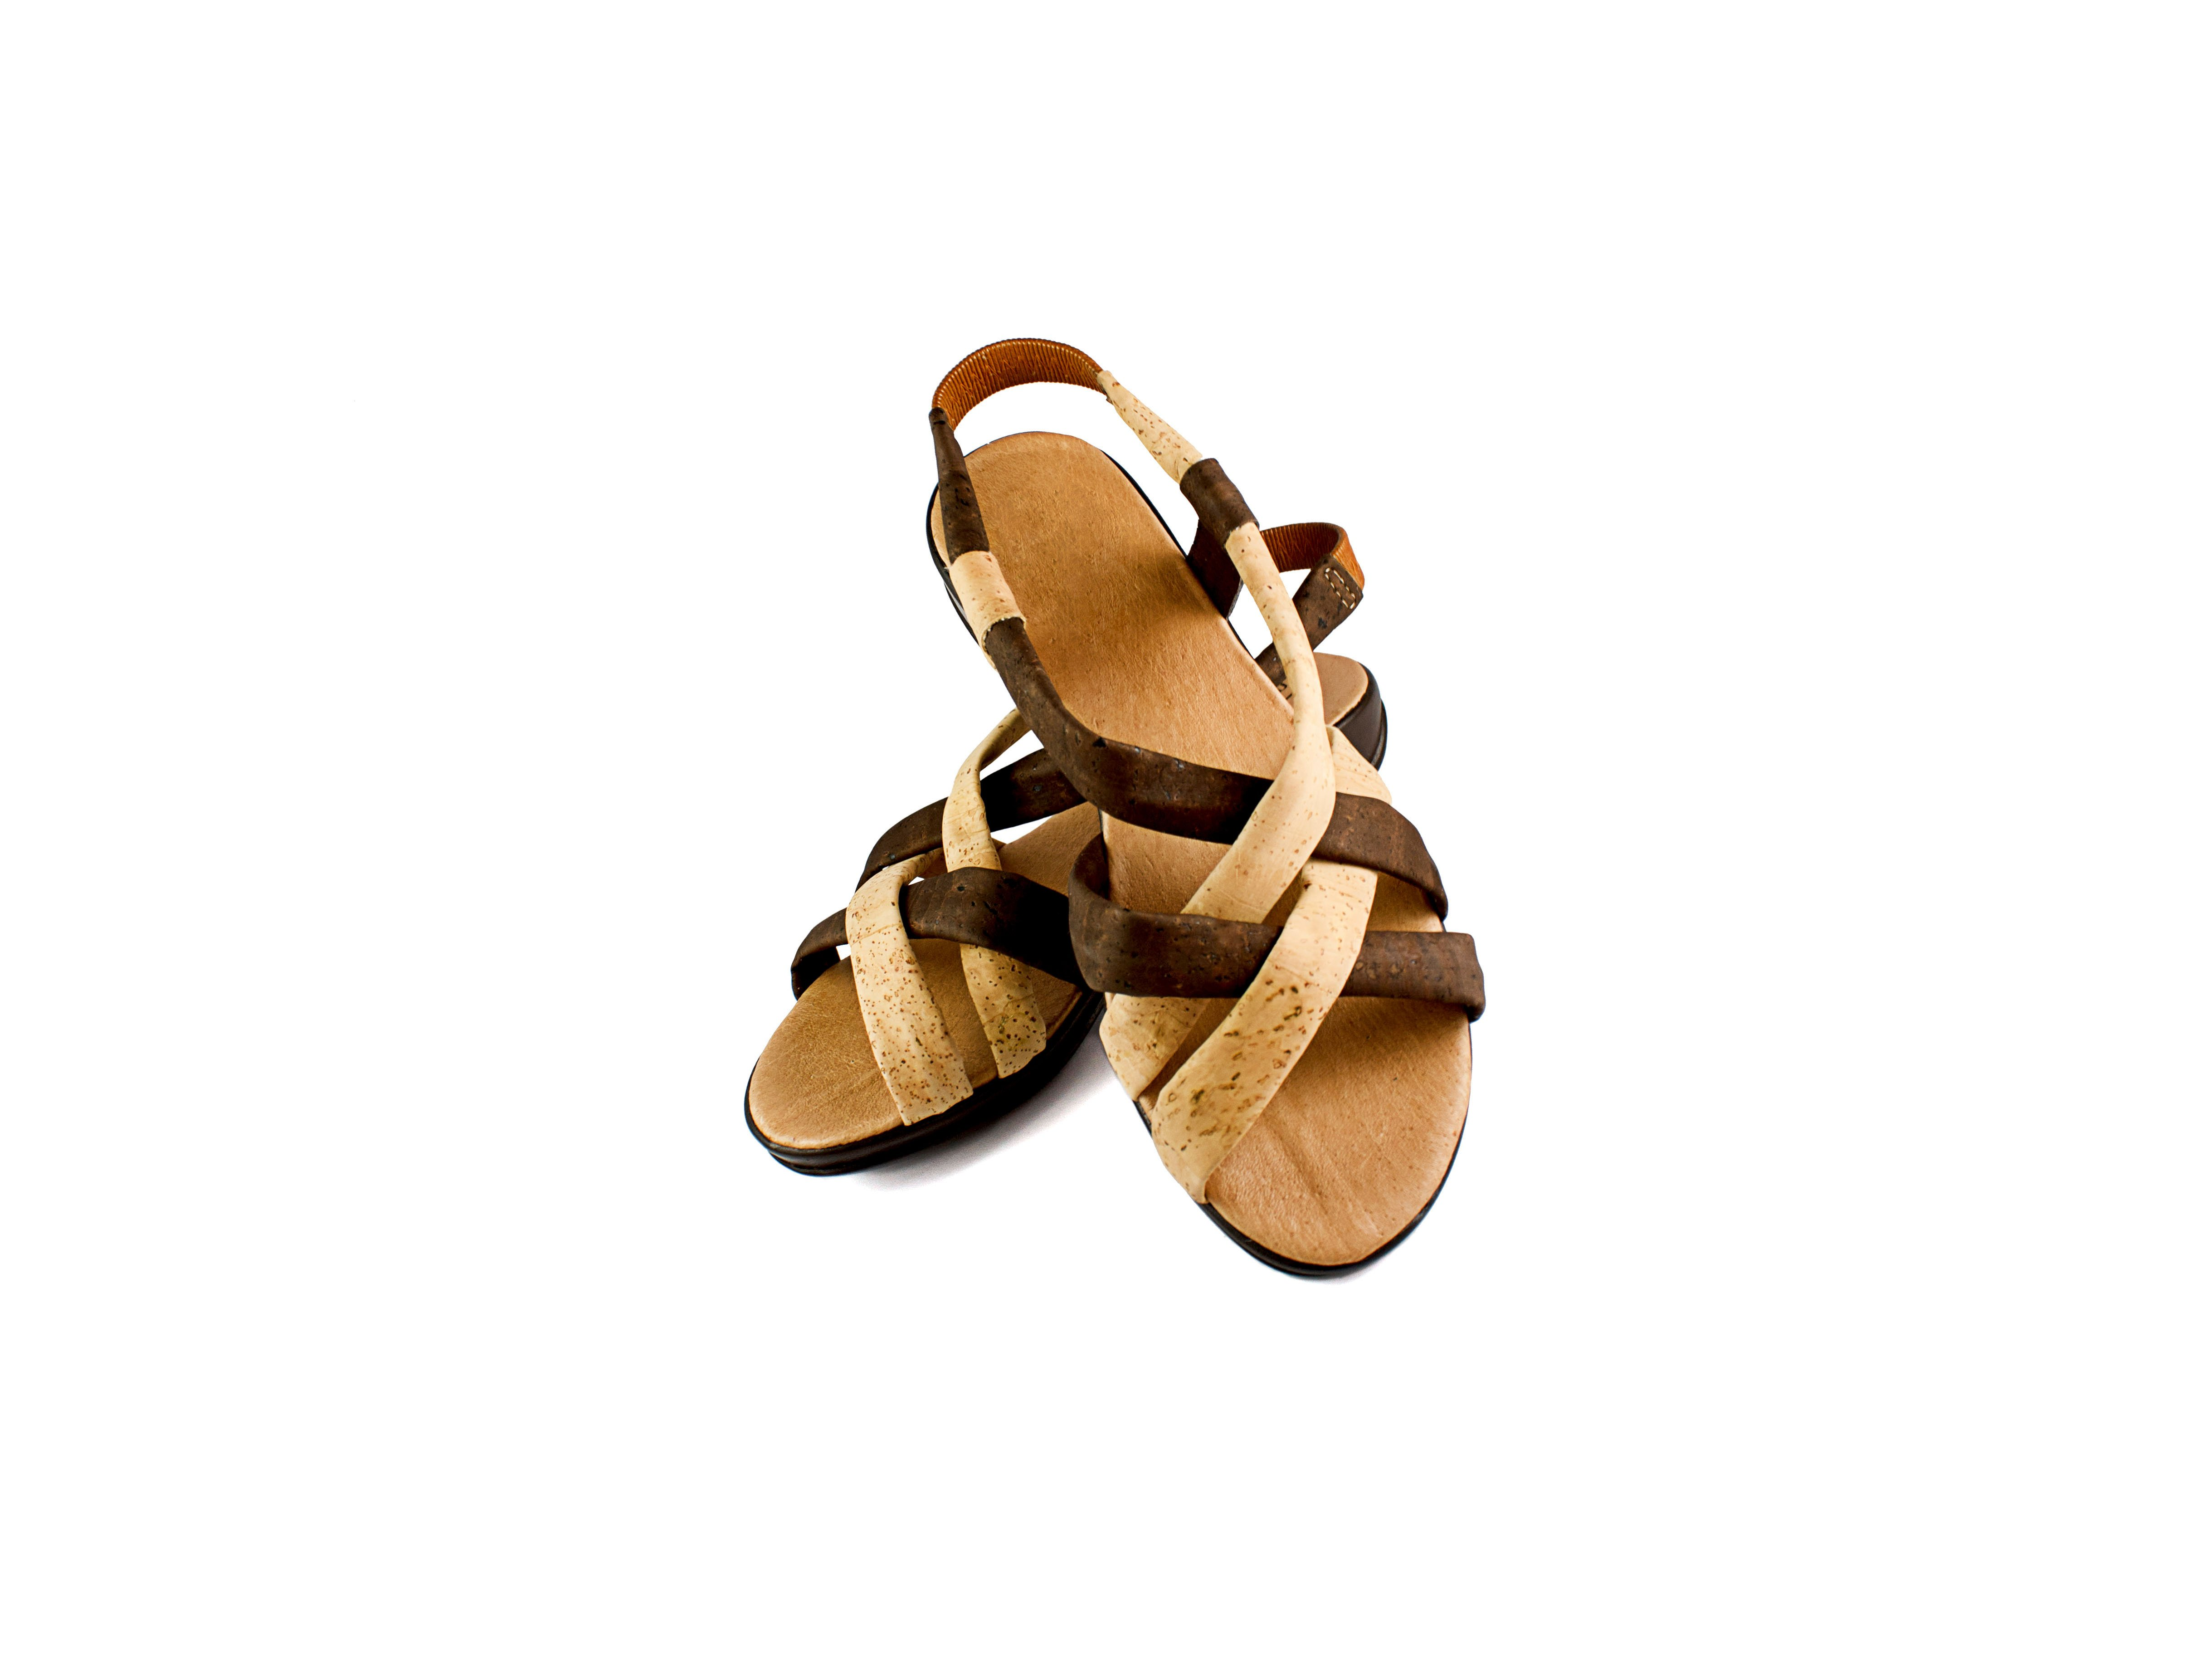 Buy cork sandals bn. Buy cork sandals bn in Spain. Buy cork sandals bn in Portugal. Buy cork sandals bn in the Canary Islands